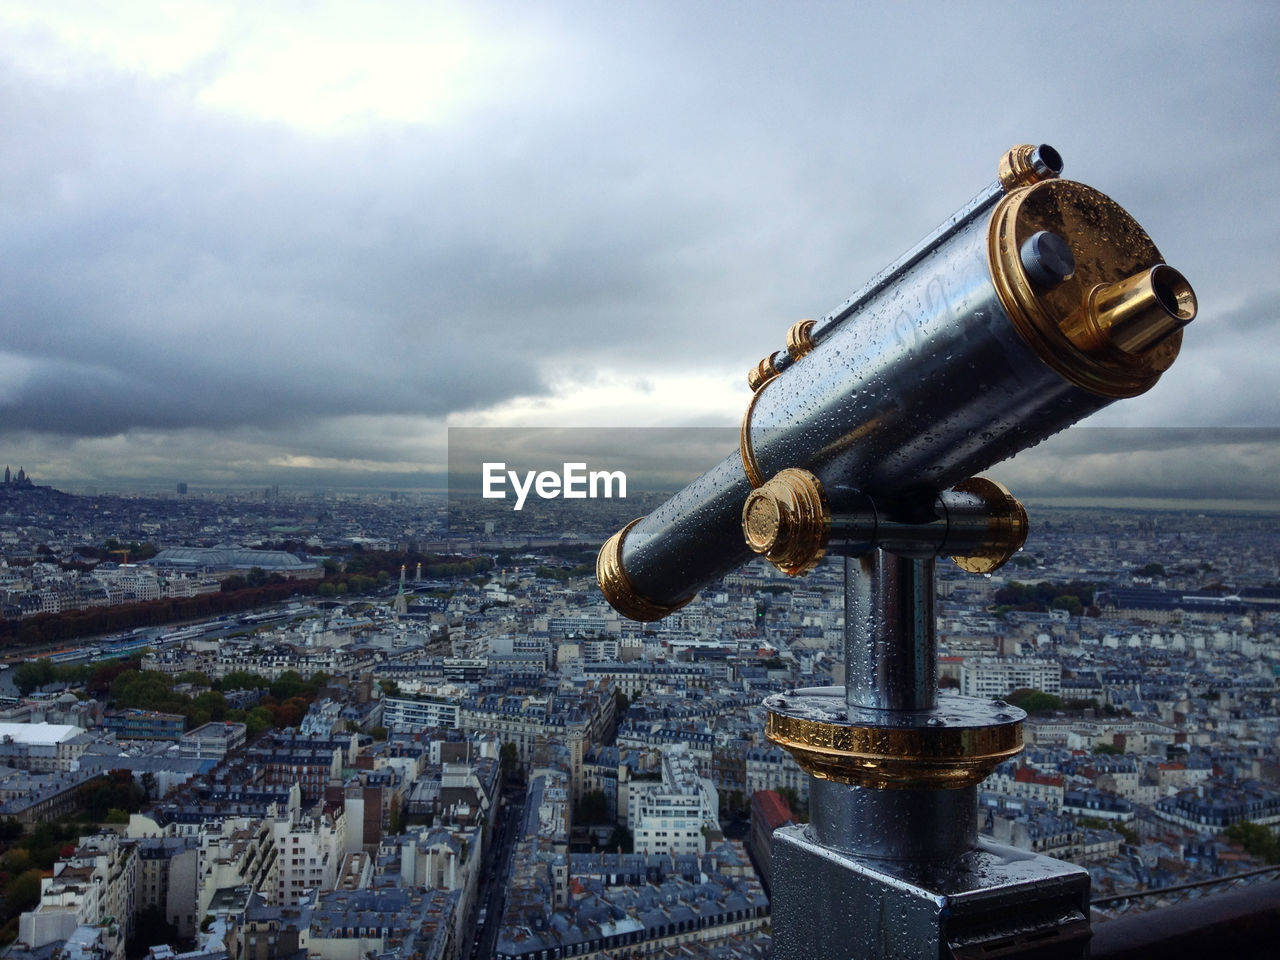 building exterior, cityscape, sky, binoculars, coin operated, architecture, city, cloud - sky, built structure, crowded, coin-operated binoculars, crowd, building, residential district, hand-held telescope, nature, metal, optical instrument, surveillance, astronomy, outdoors